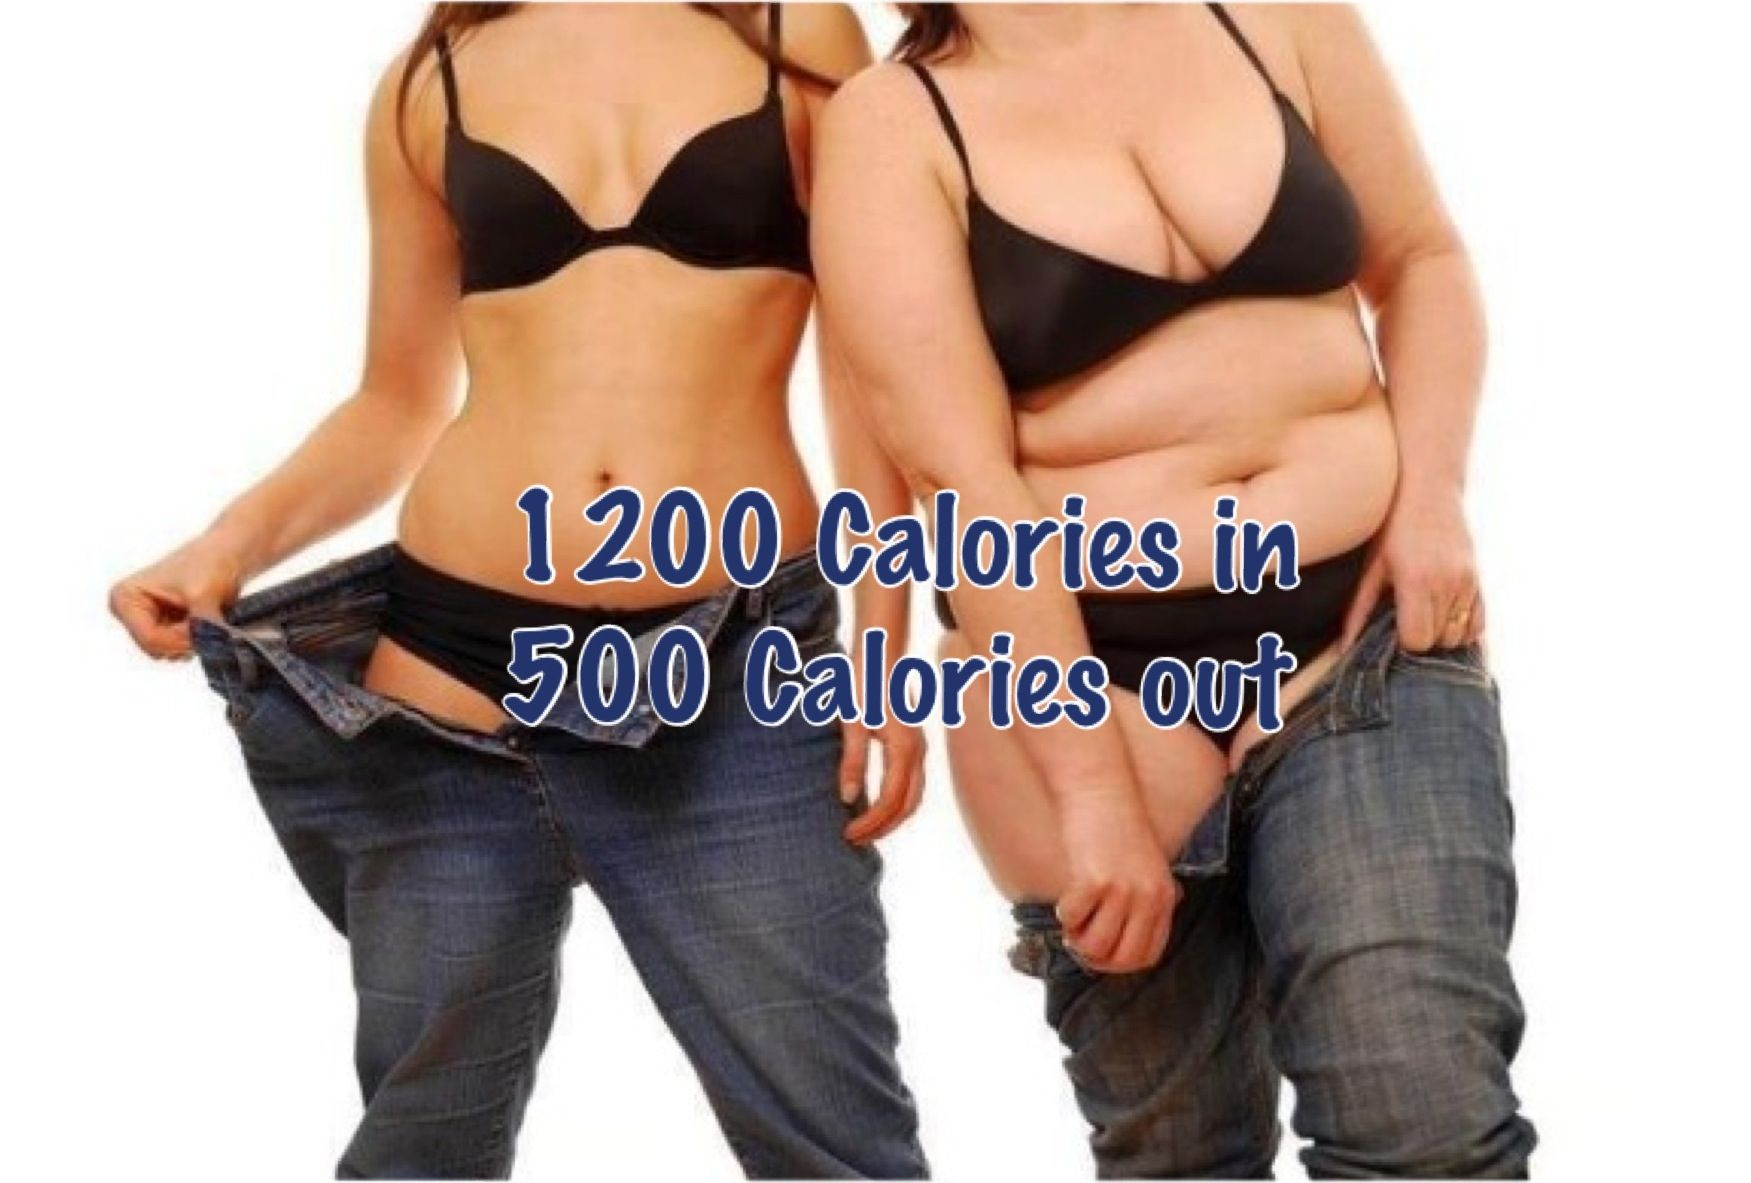 Eat 1200 calories everyday of whatever you want, but try to make it as healthy as possible, and workout 500 calories 3-6 times a week. Can divide it into walking and elliptical. Can lose 3 pounds per week.